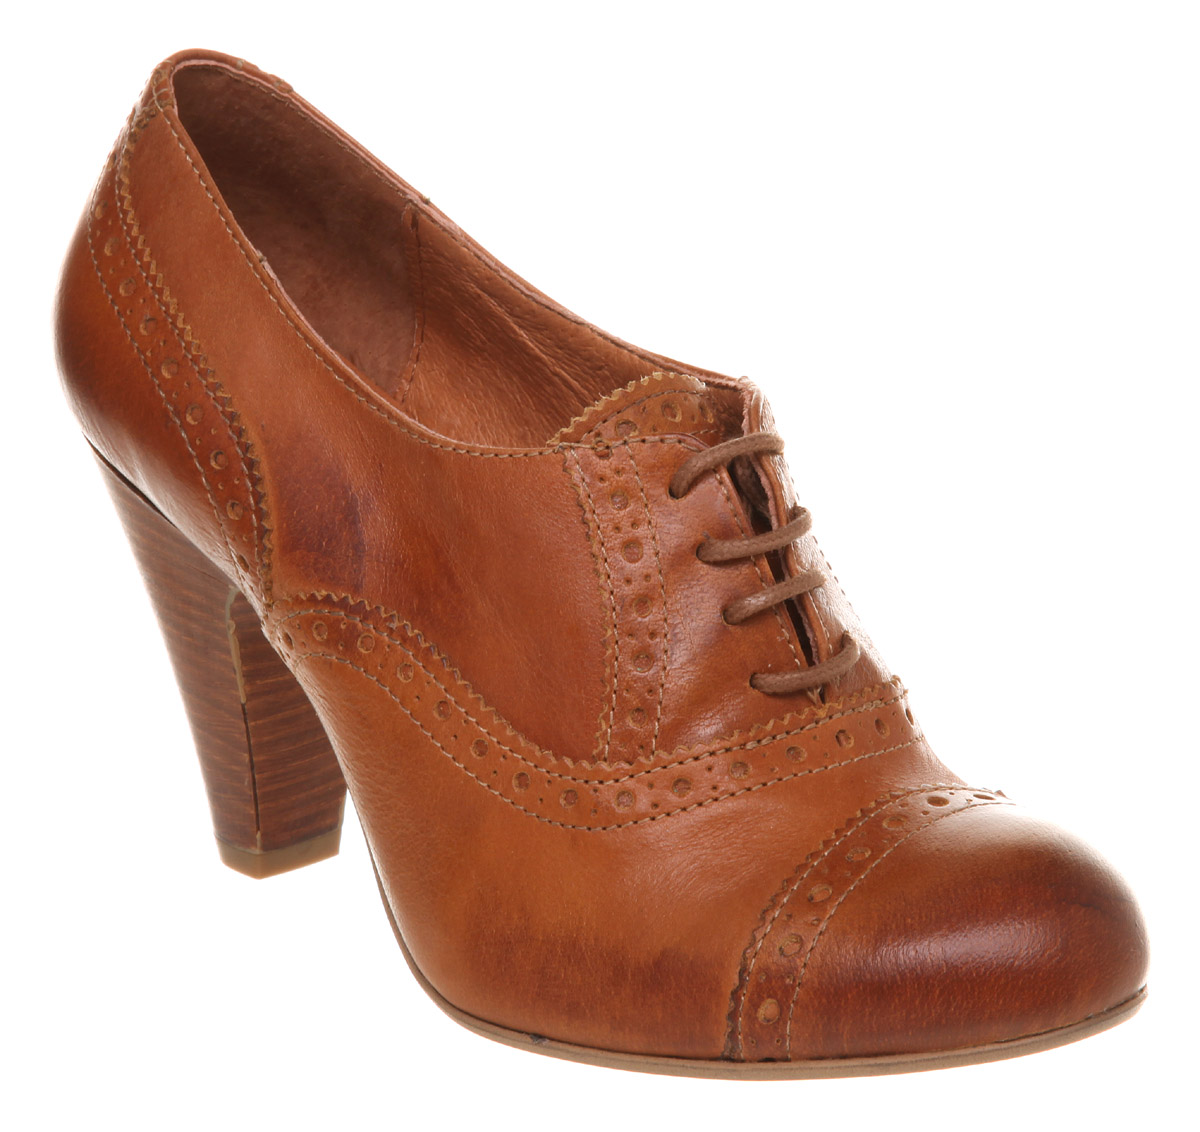 Brogues –the ornamented shoes for all occasions! Brogues are a style of low-heeled shoes that feature multiple-piece, sturdy leather uppers with decorative perforations along with visible edges. Traditionally these shoes were considered to be outdoor or country footwear and were not meant to be worn otherwise for casual or business occasions.